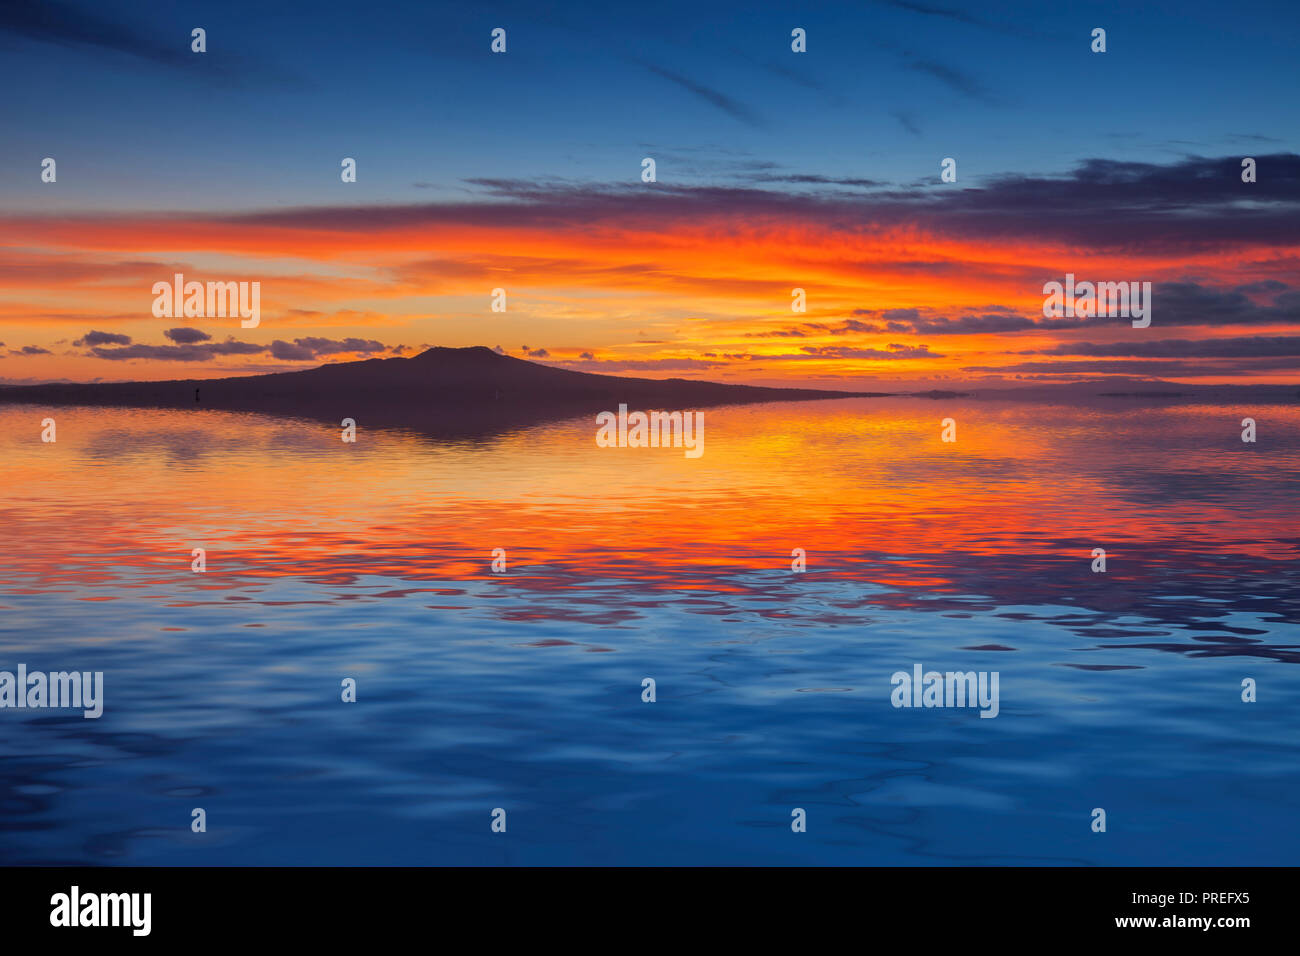 Rangitoto Island at sunrise, Auckland, New Zealand, reflected in the waters of the Hauraki Gulf. Stock Photo